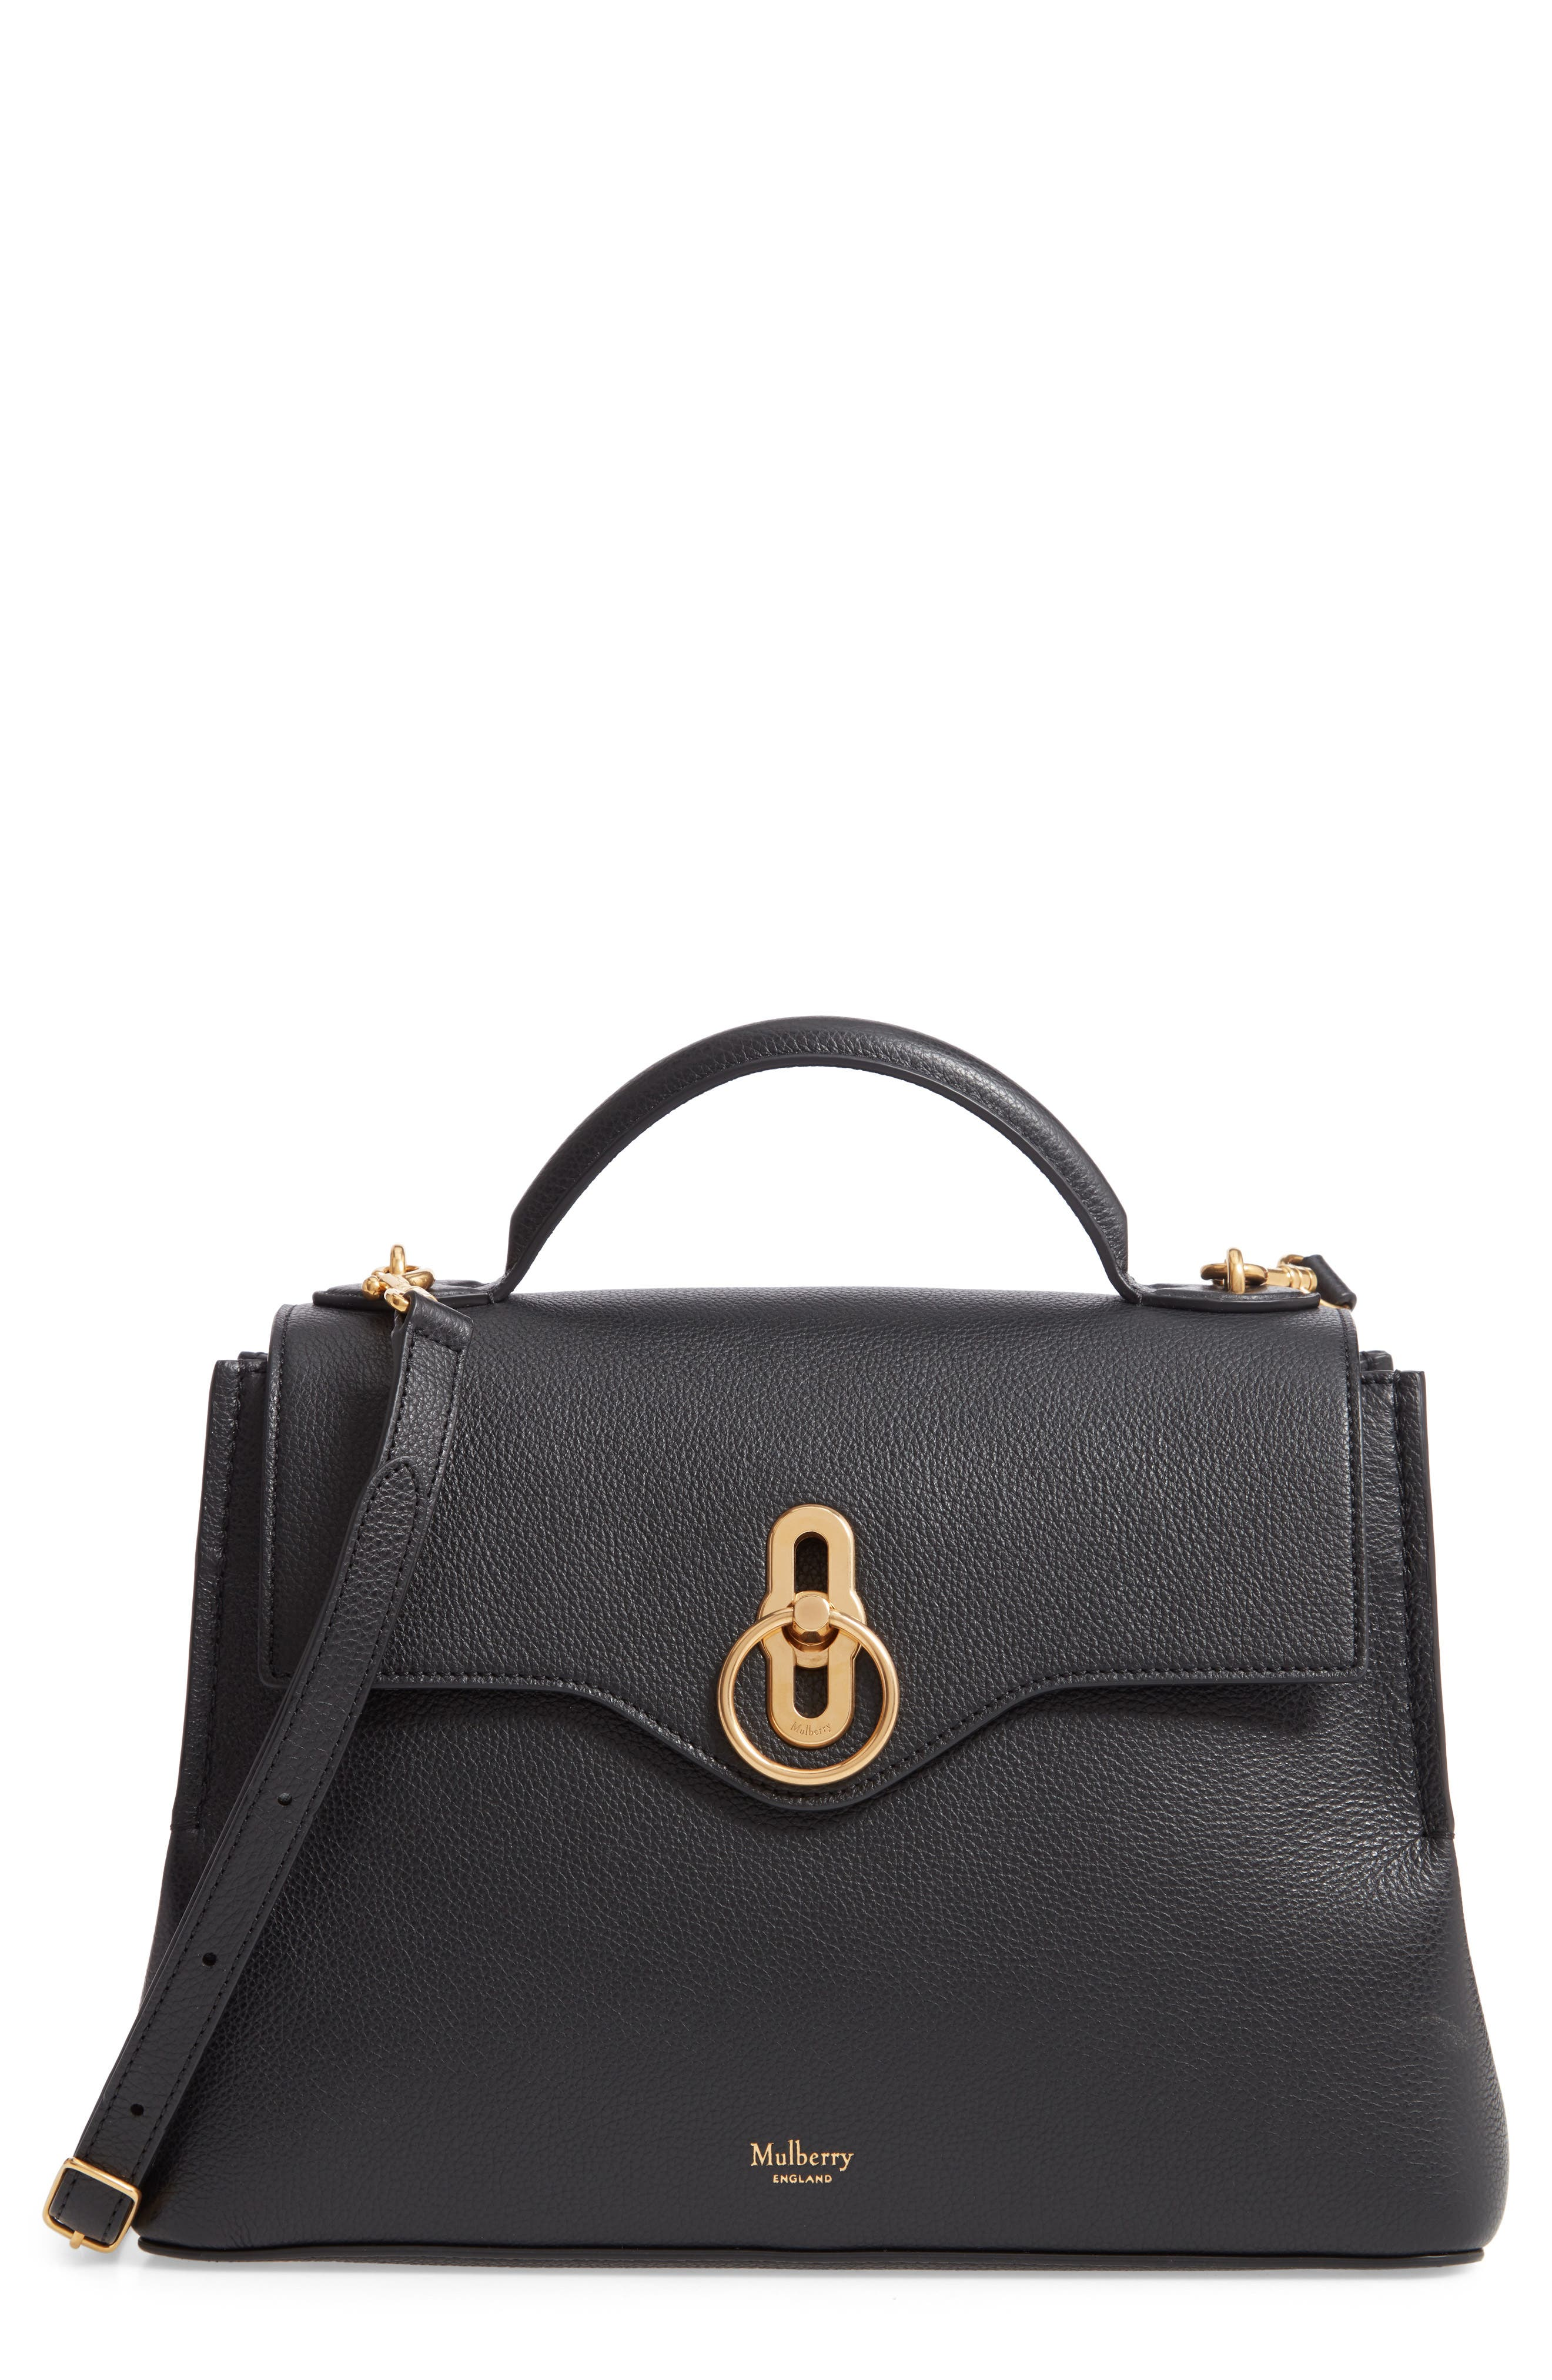 MULBERRY,                             Small Seaton Leather Top Handle Satchel,                             Main thumbnail 1, color,                             BLACK